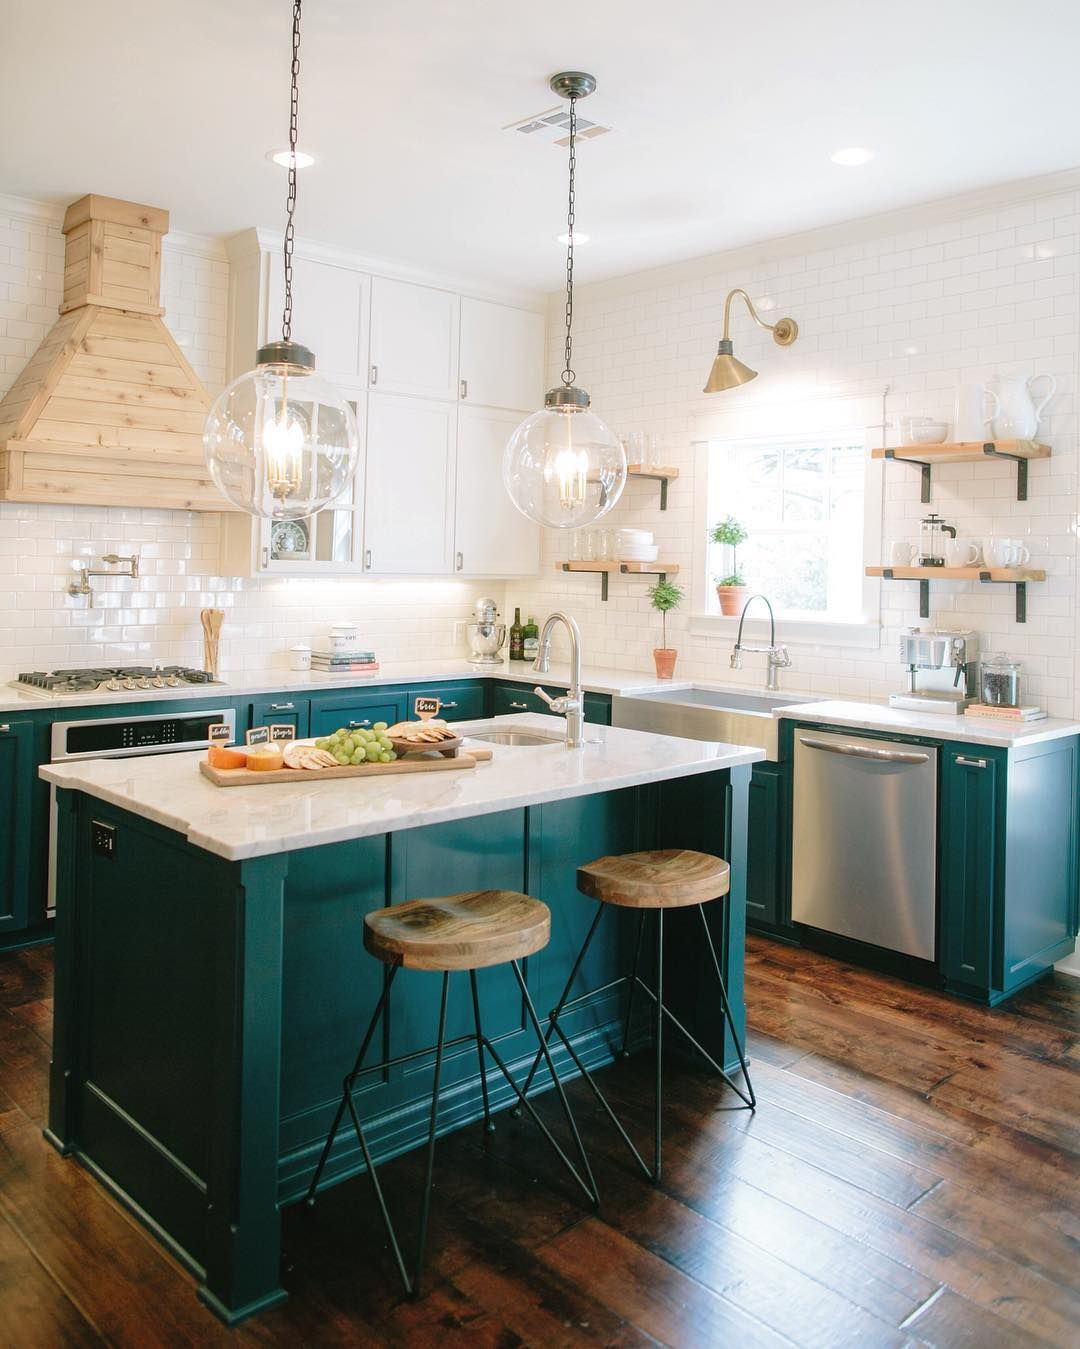 Superbe Designers Are Loving This Color For Kitchen Cabinets Right Now   Dark Teal  Cabinets